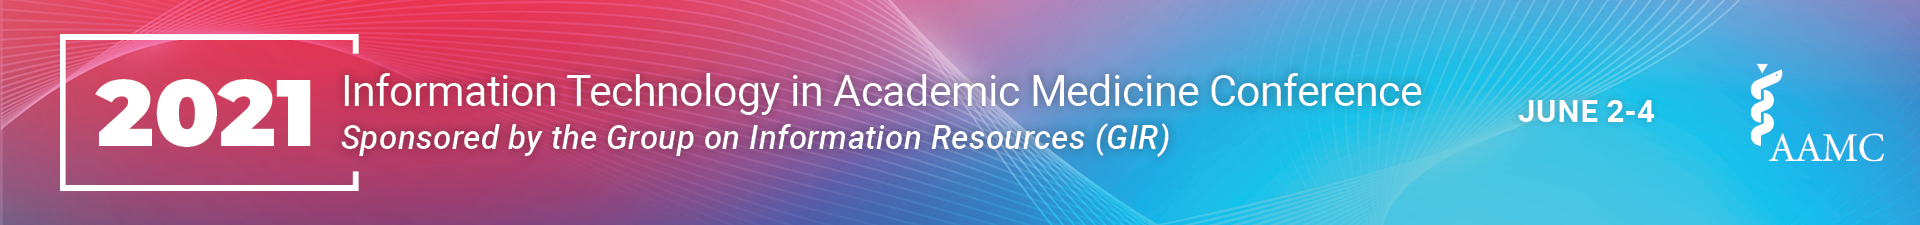 2021 Information Technology in Academic Medicine Conference Sponsored by the Group on Information Resources Event Banner